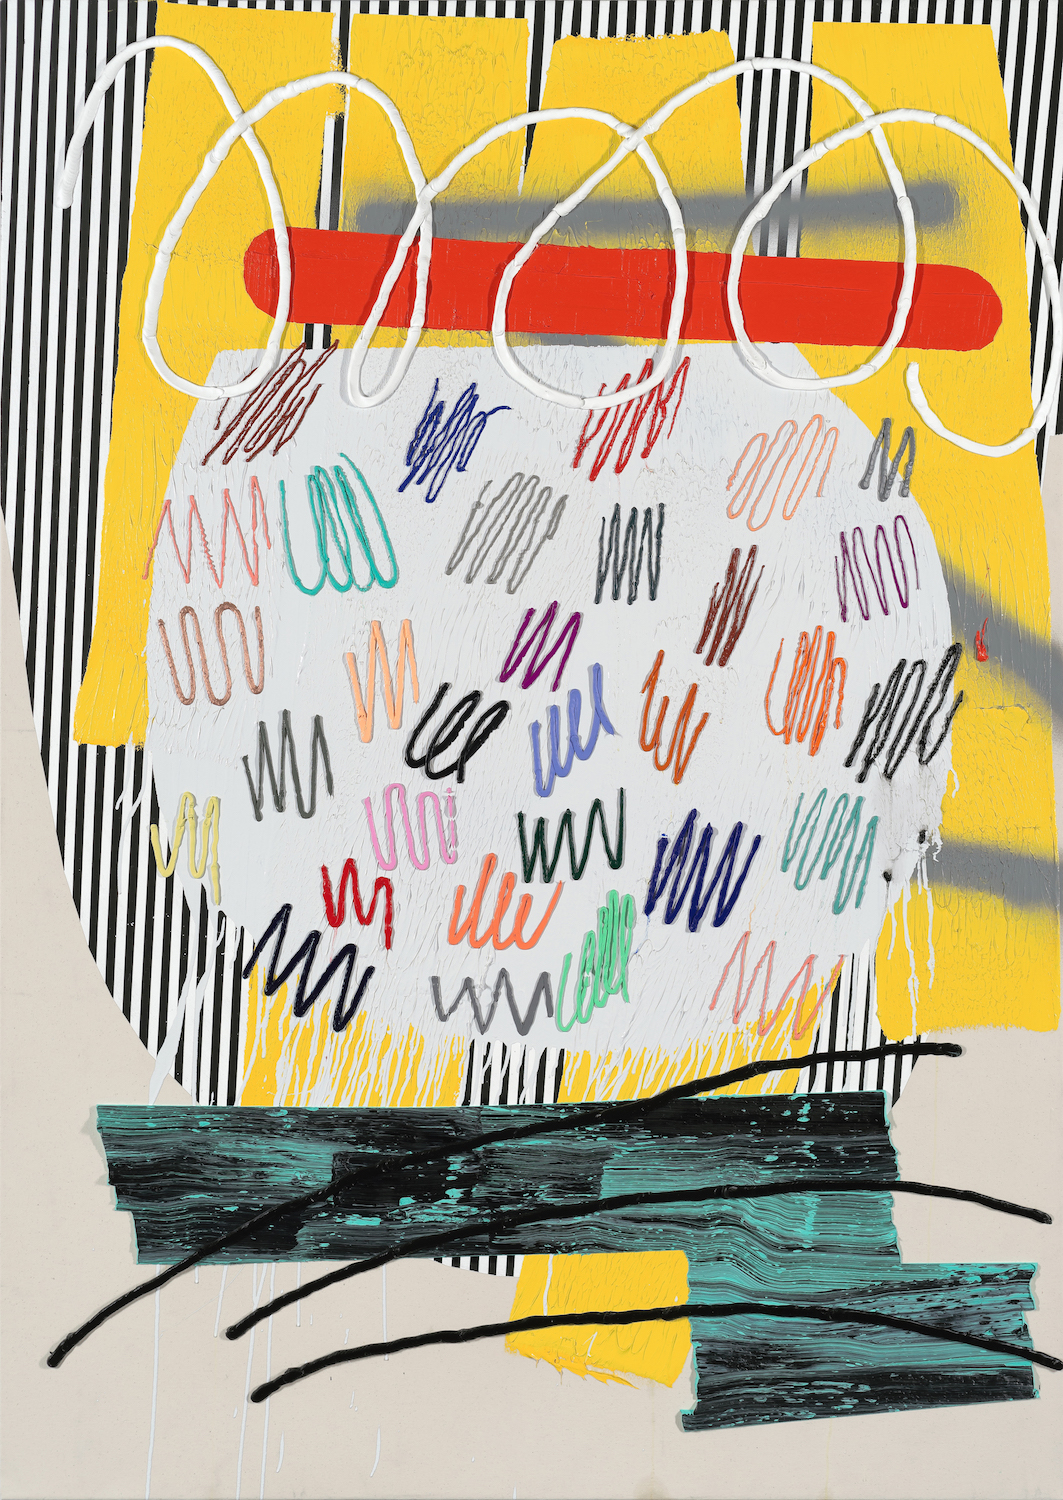 Trudy Benson   Scratchpad , 2014  Acrylic, enamel, and oil on canvas  76 x 54 inches